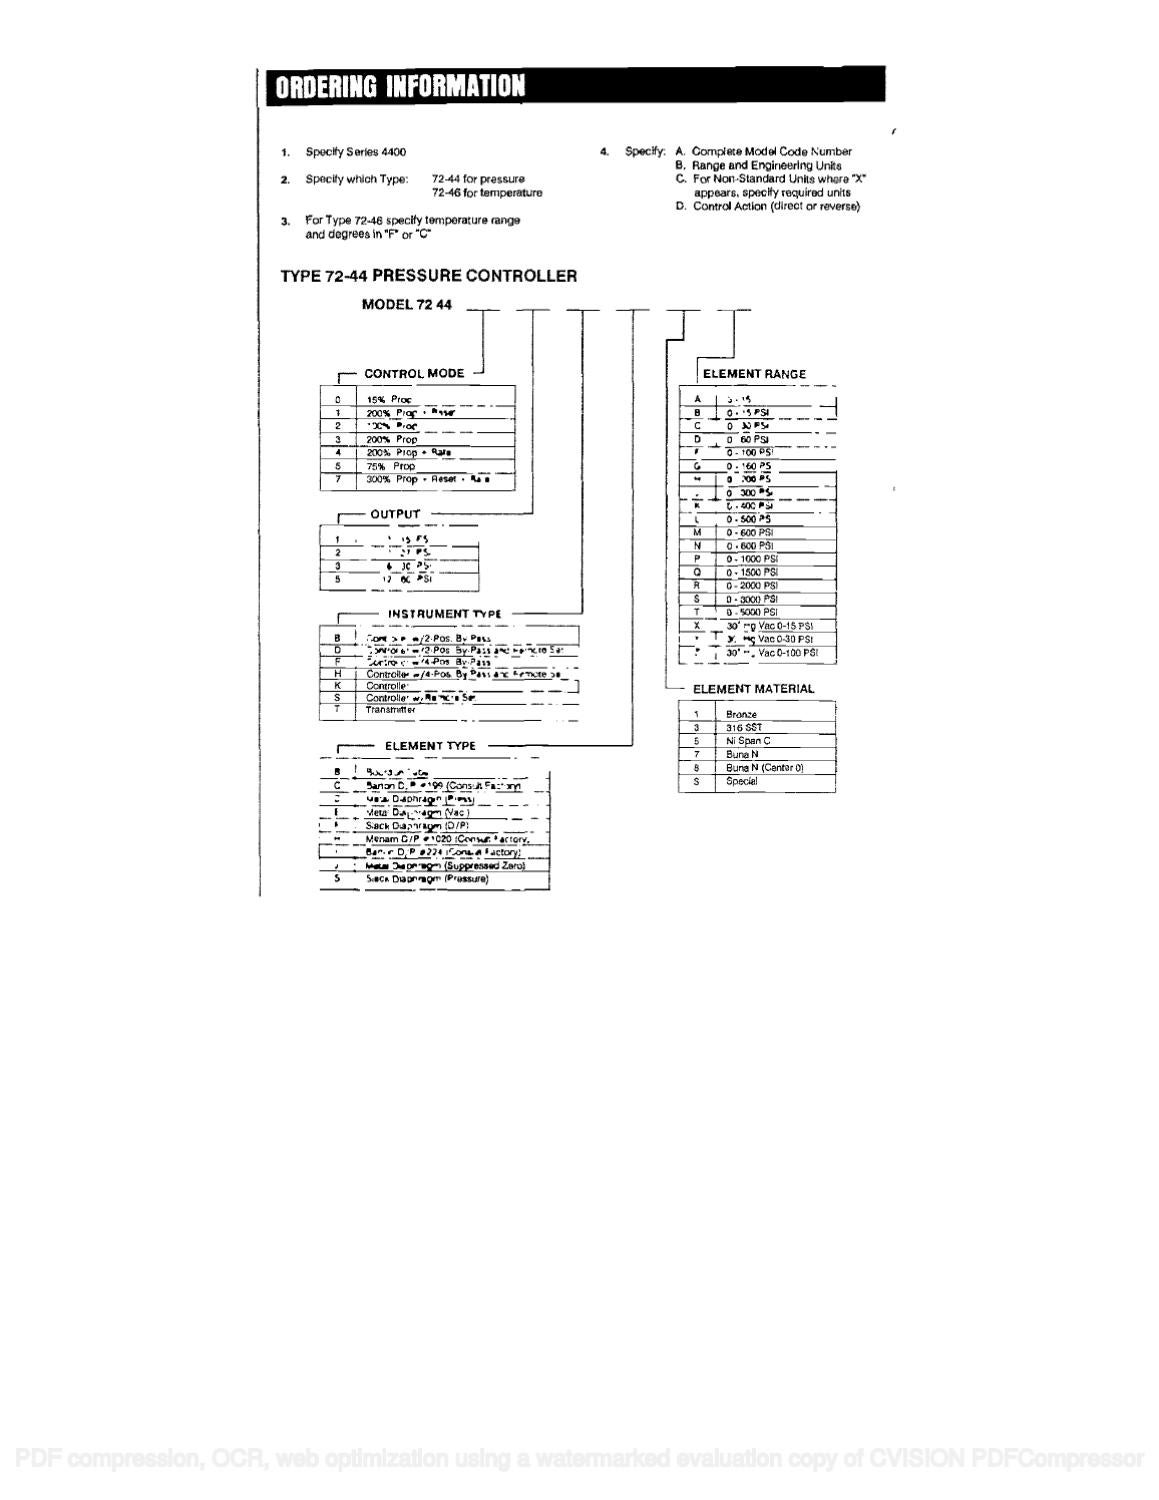 4400 Controller Operation & Parts Manual by RMC Process